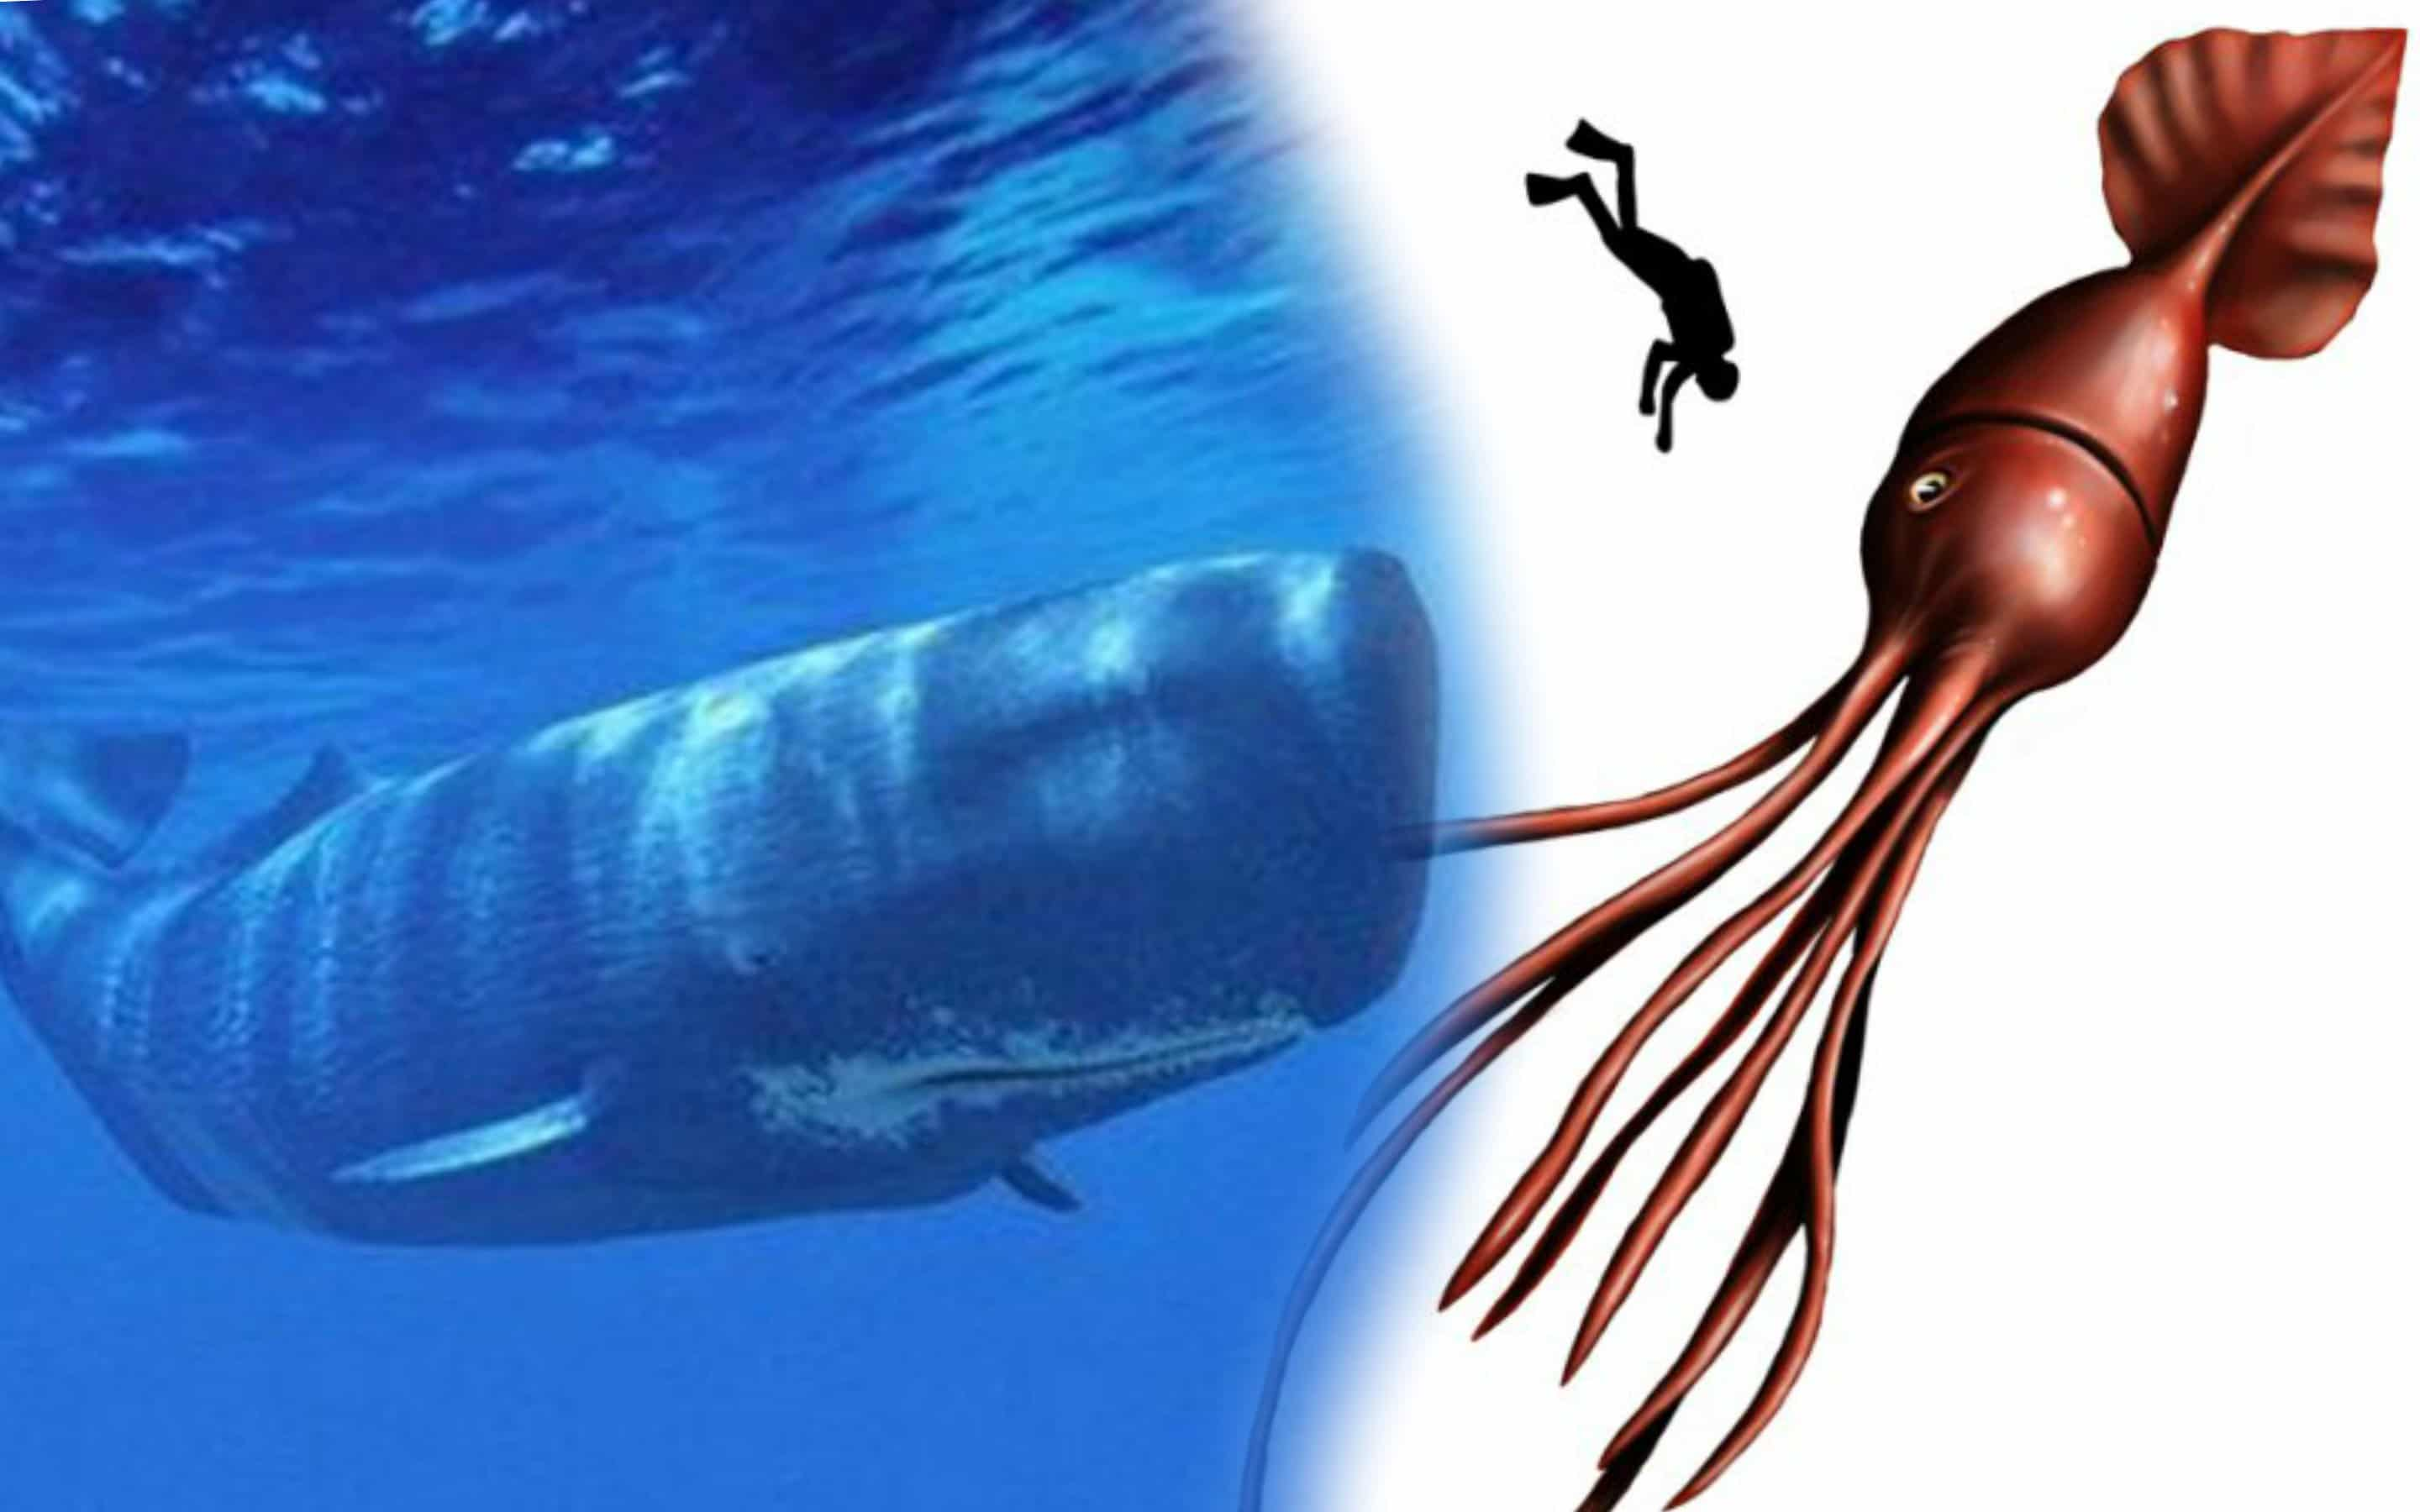 sperm whale essay Dolphin vs whale physiology like all cetaceans, whales and dolphins are descendants of land-living animals that returned to fresh or salt water after living millions of years on land.